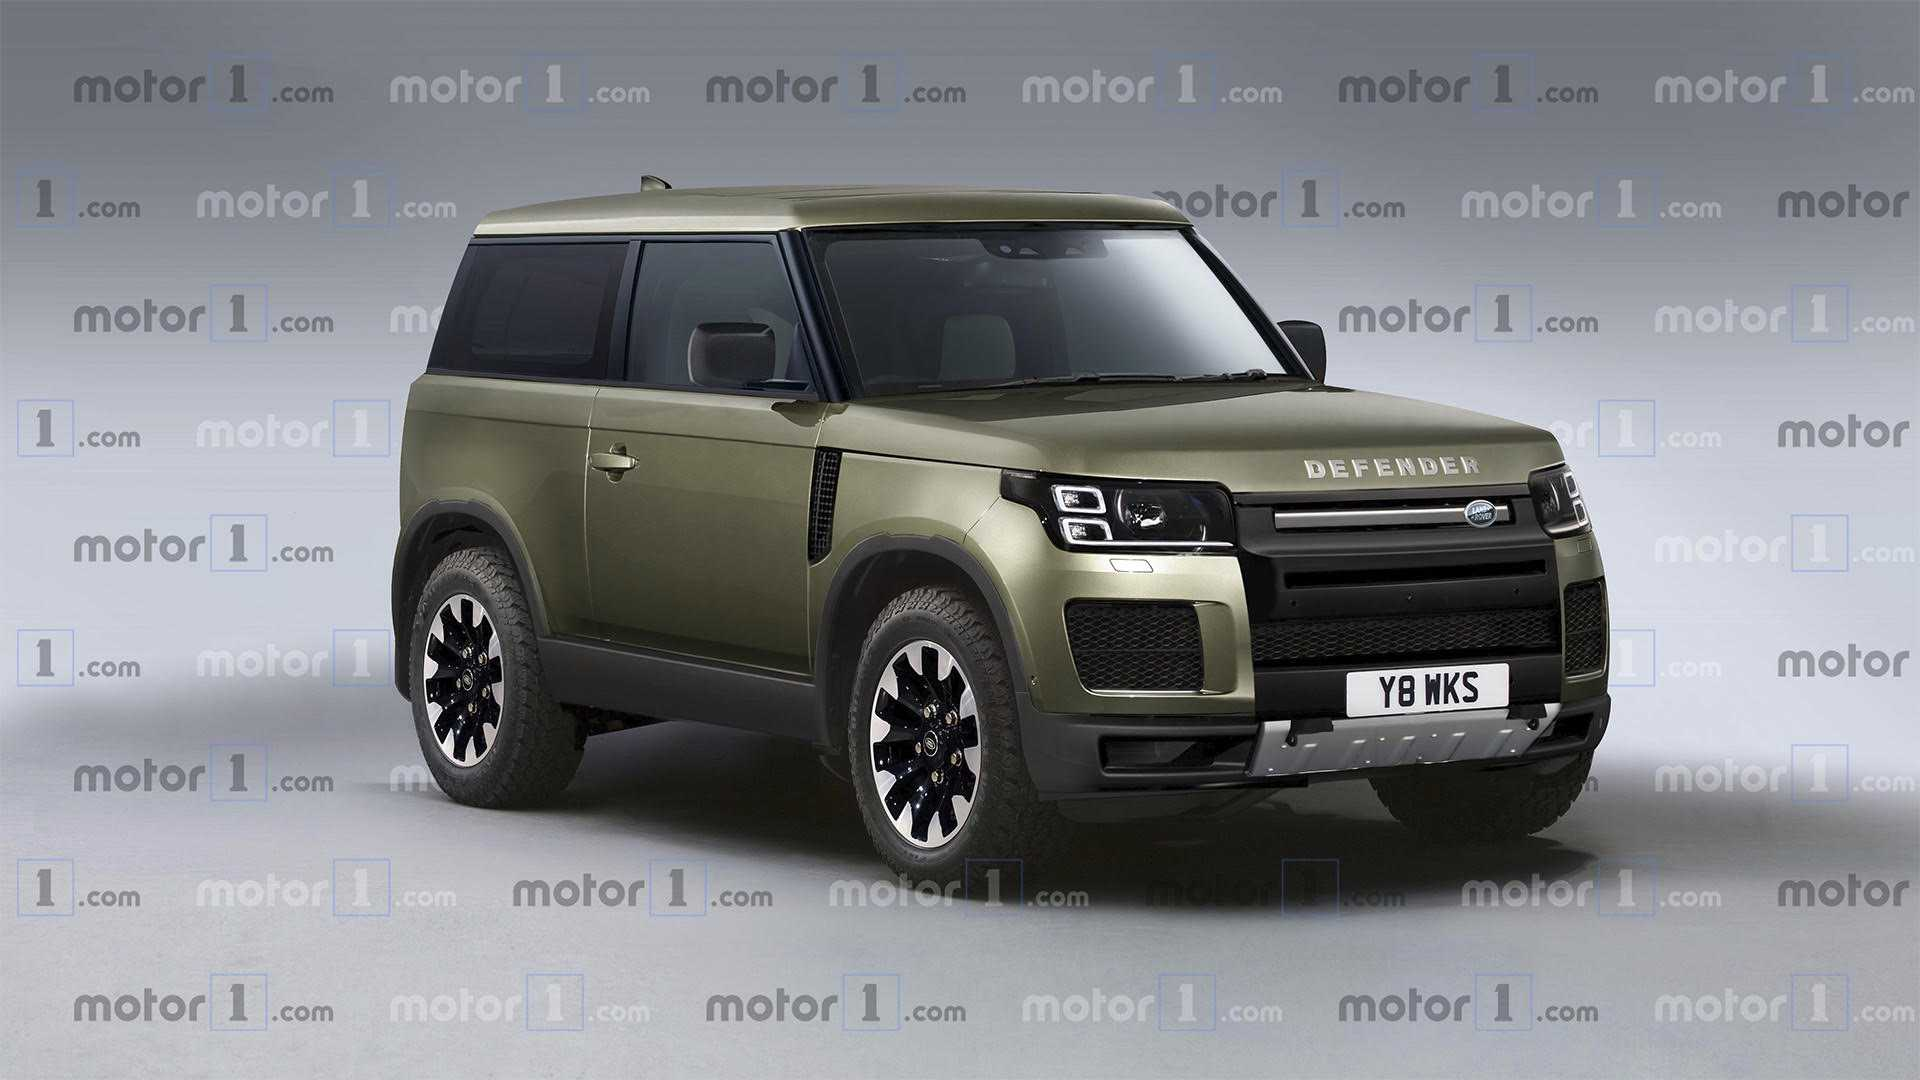 36 New 2020 Land Rover LR4 Exterior